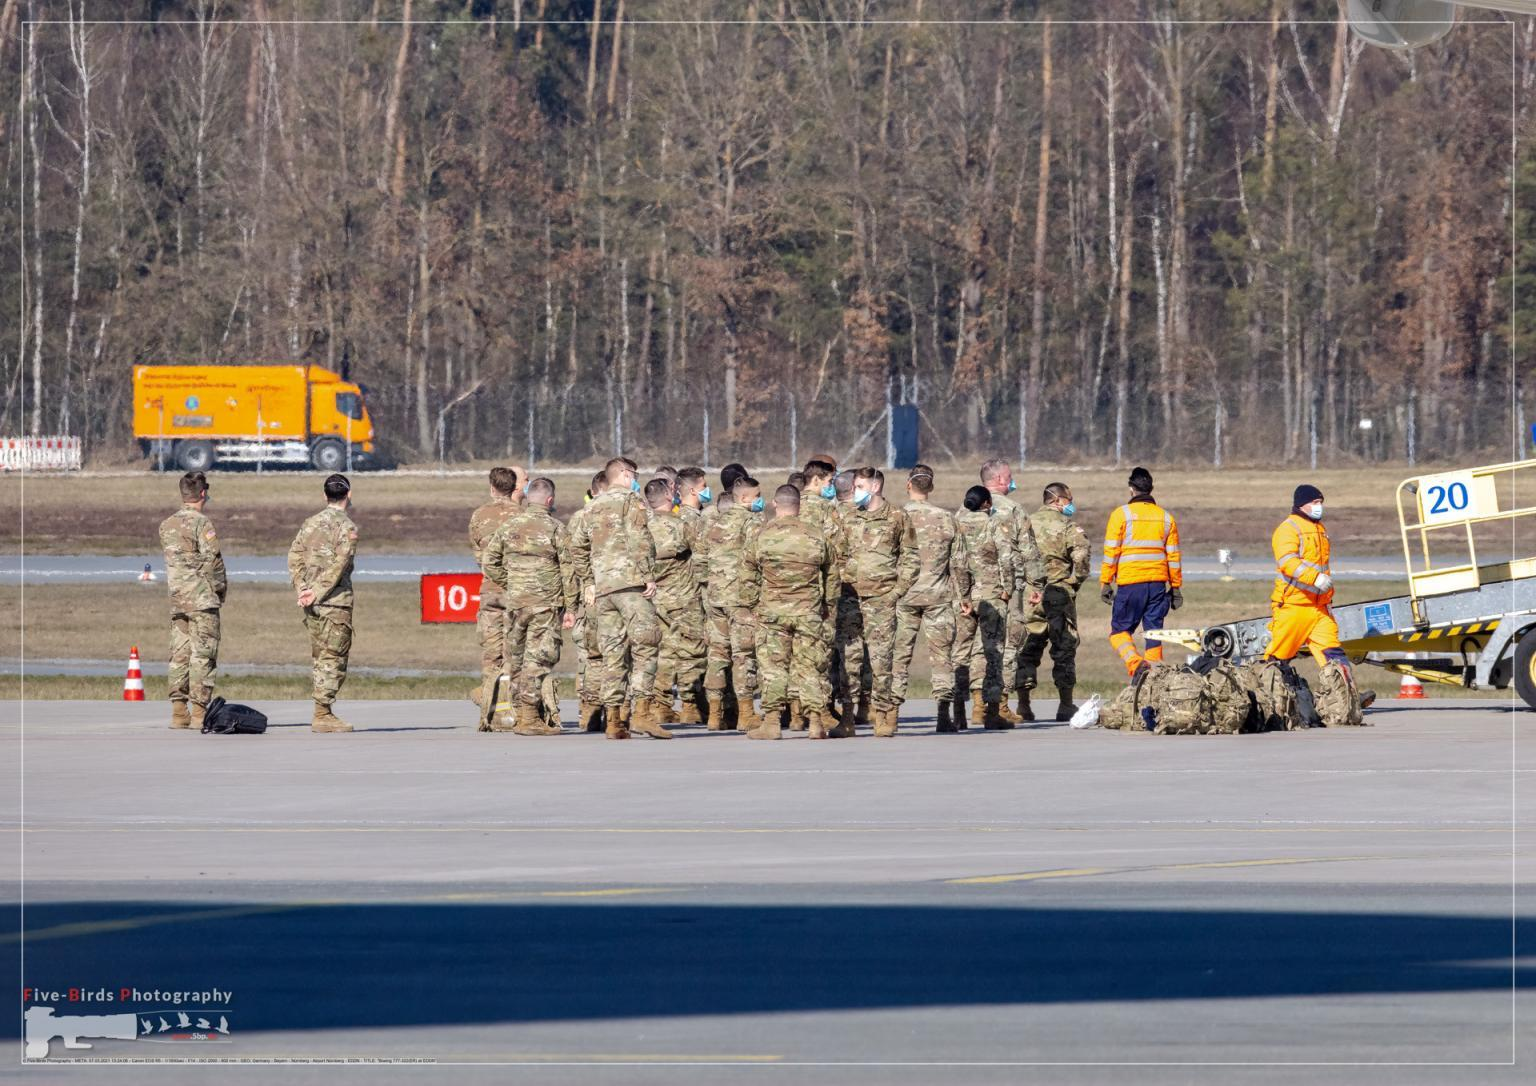 US troops are waiting after a special flight at the Albrecht Duerer Airport in Nuremberg in Germany